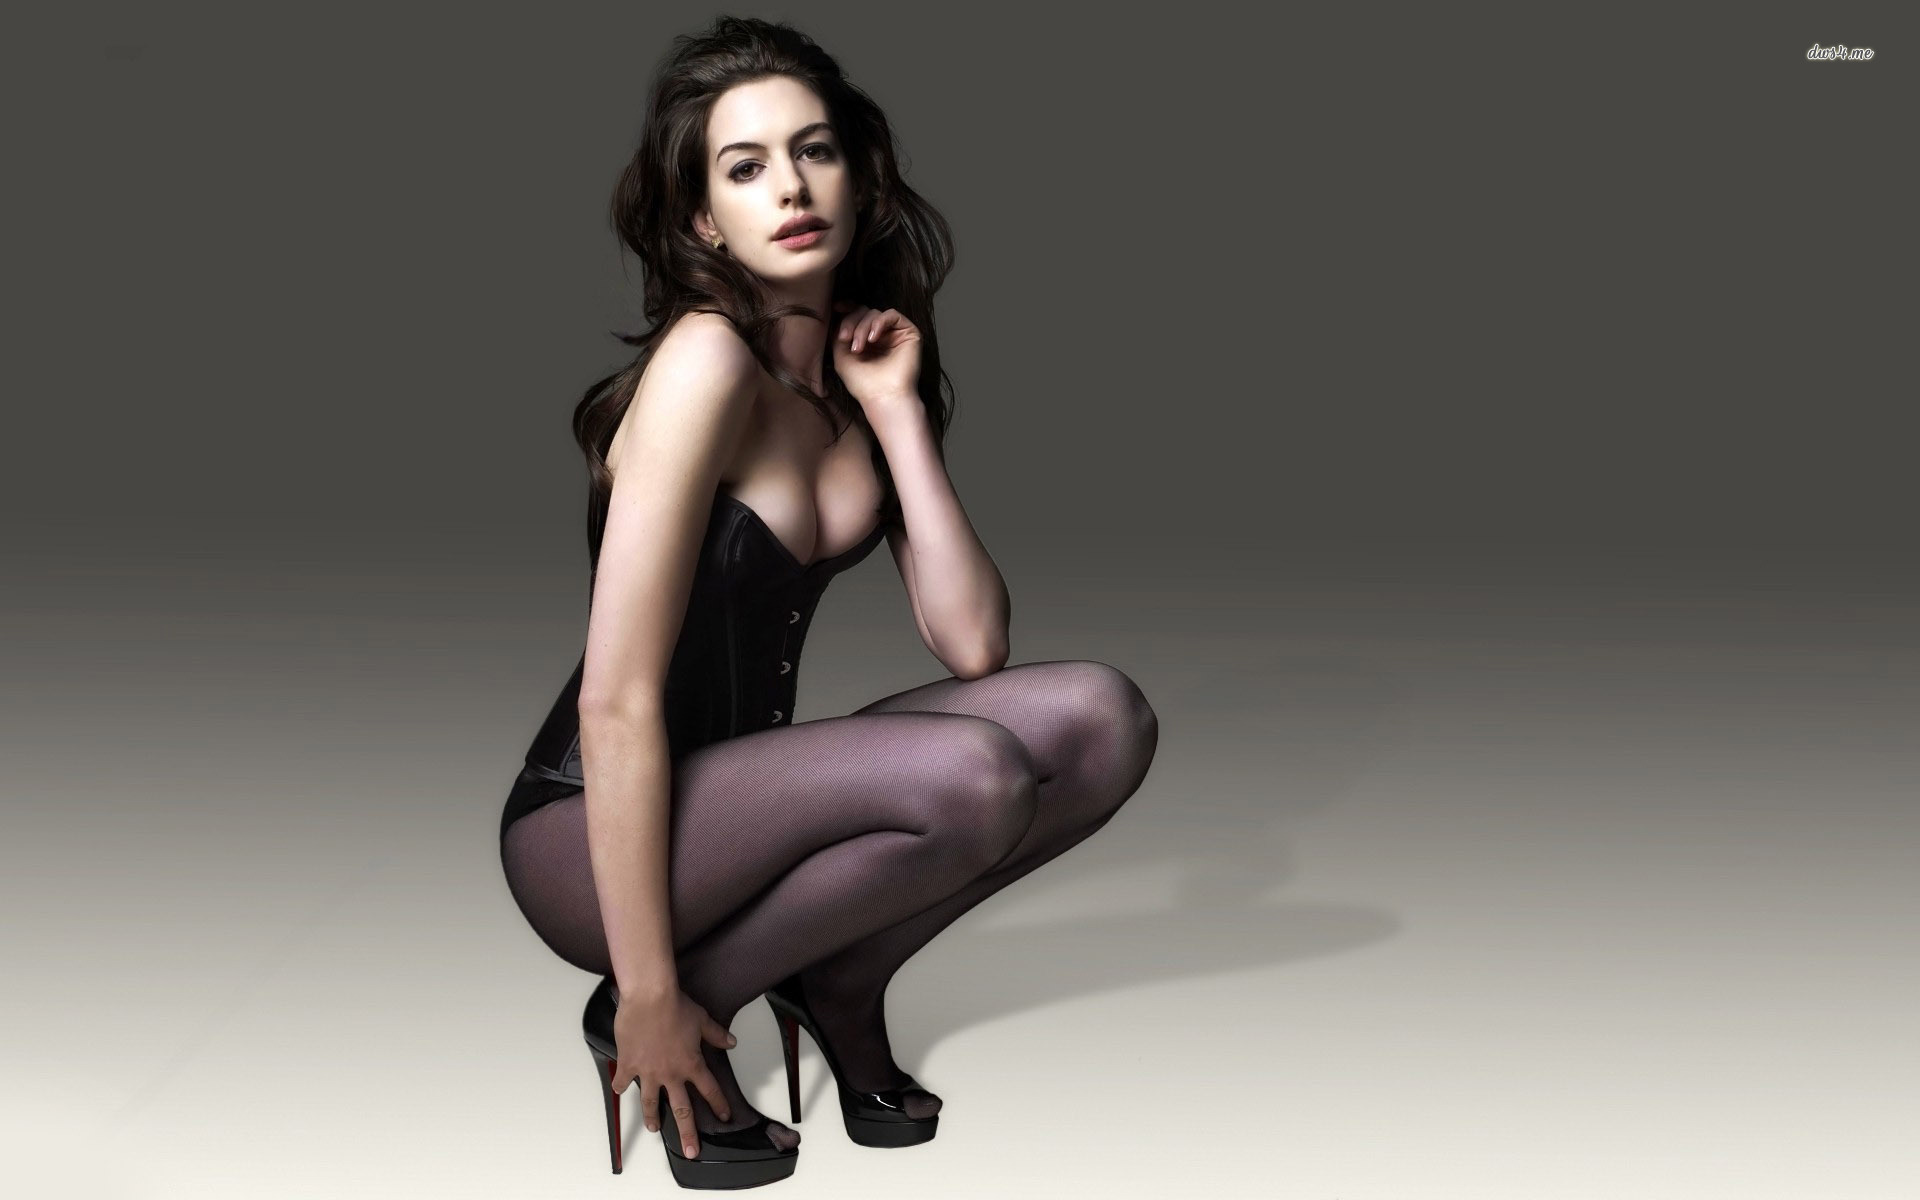 1920x1200 - Anne Hathaway Wallpapers 15